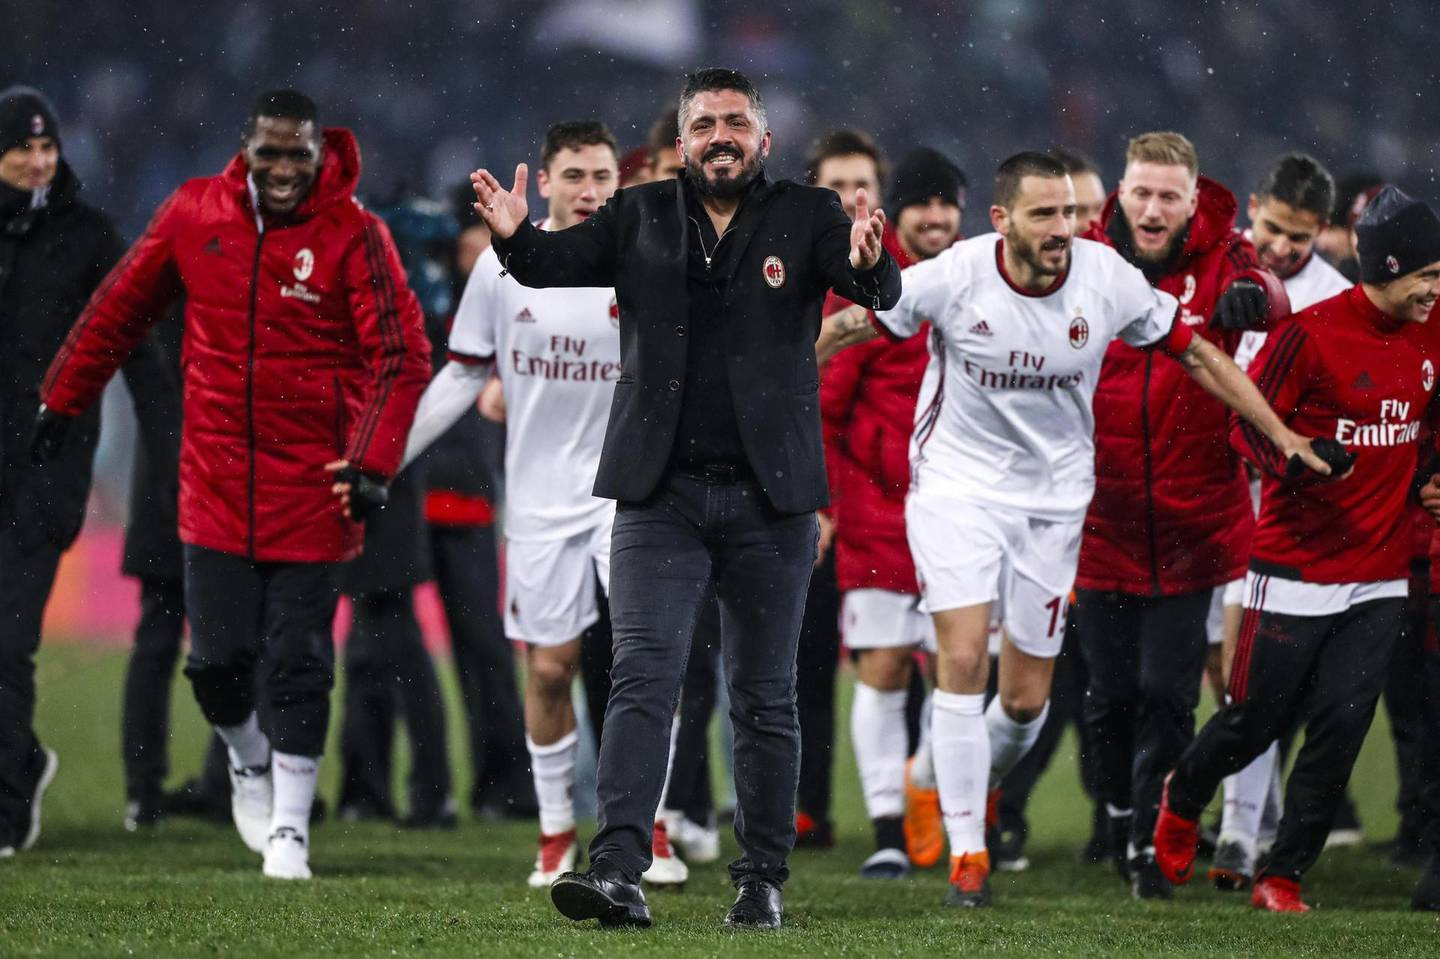 epa06571562 Milan's coach Gennaro Gattuso celebrates the victory at the end of after the Italian Cup semi-final second leg soccer match SS Lazio vs AC Milan at Olimpico stadium in Rome, Italy, 28 February 2018.  EPA/ANGELO CARCONI